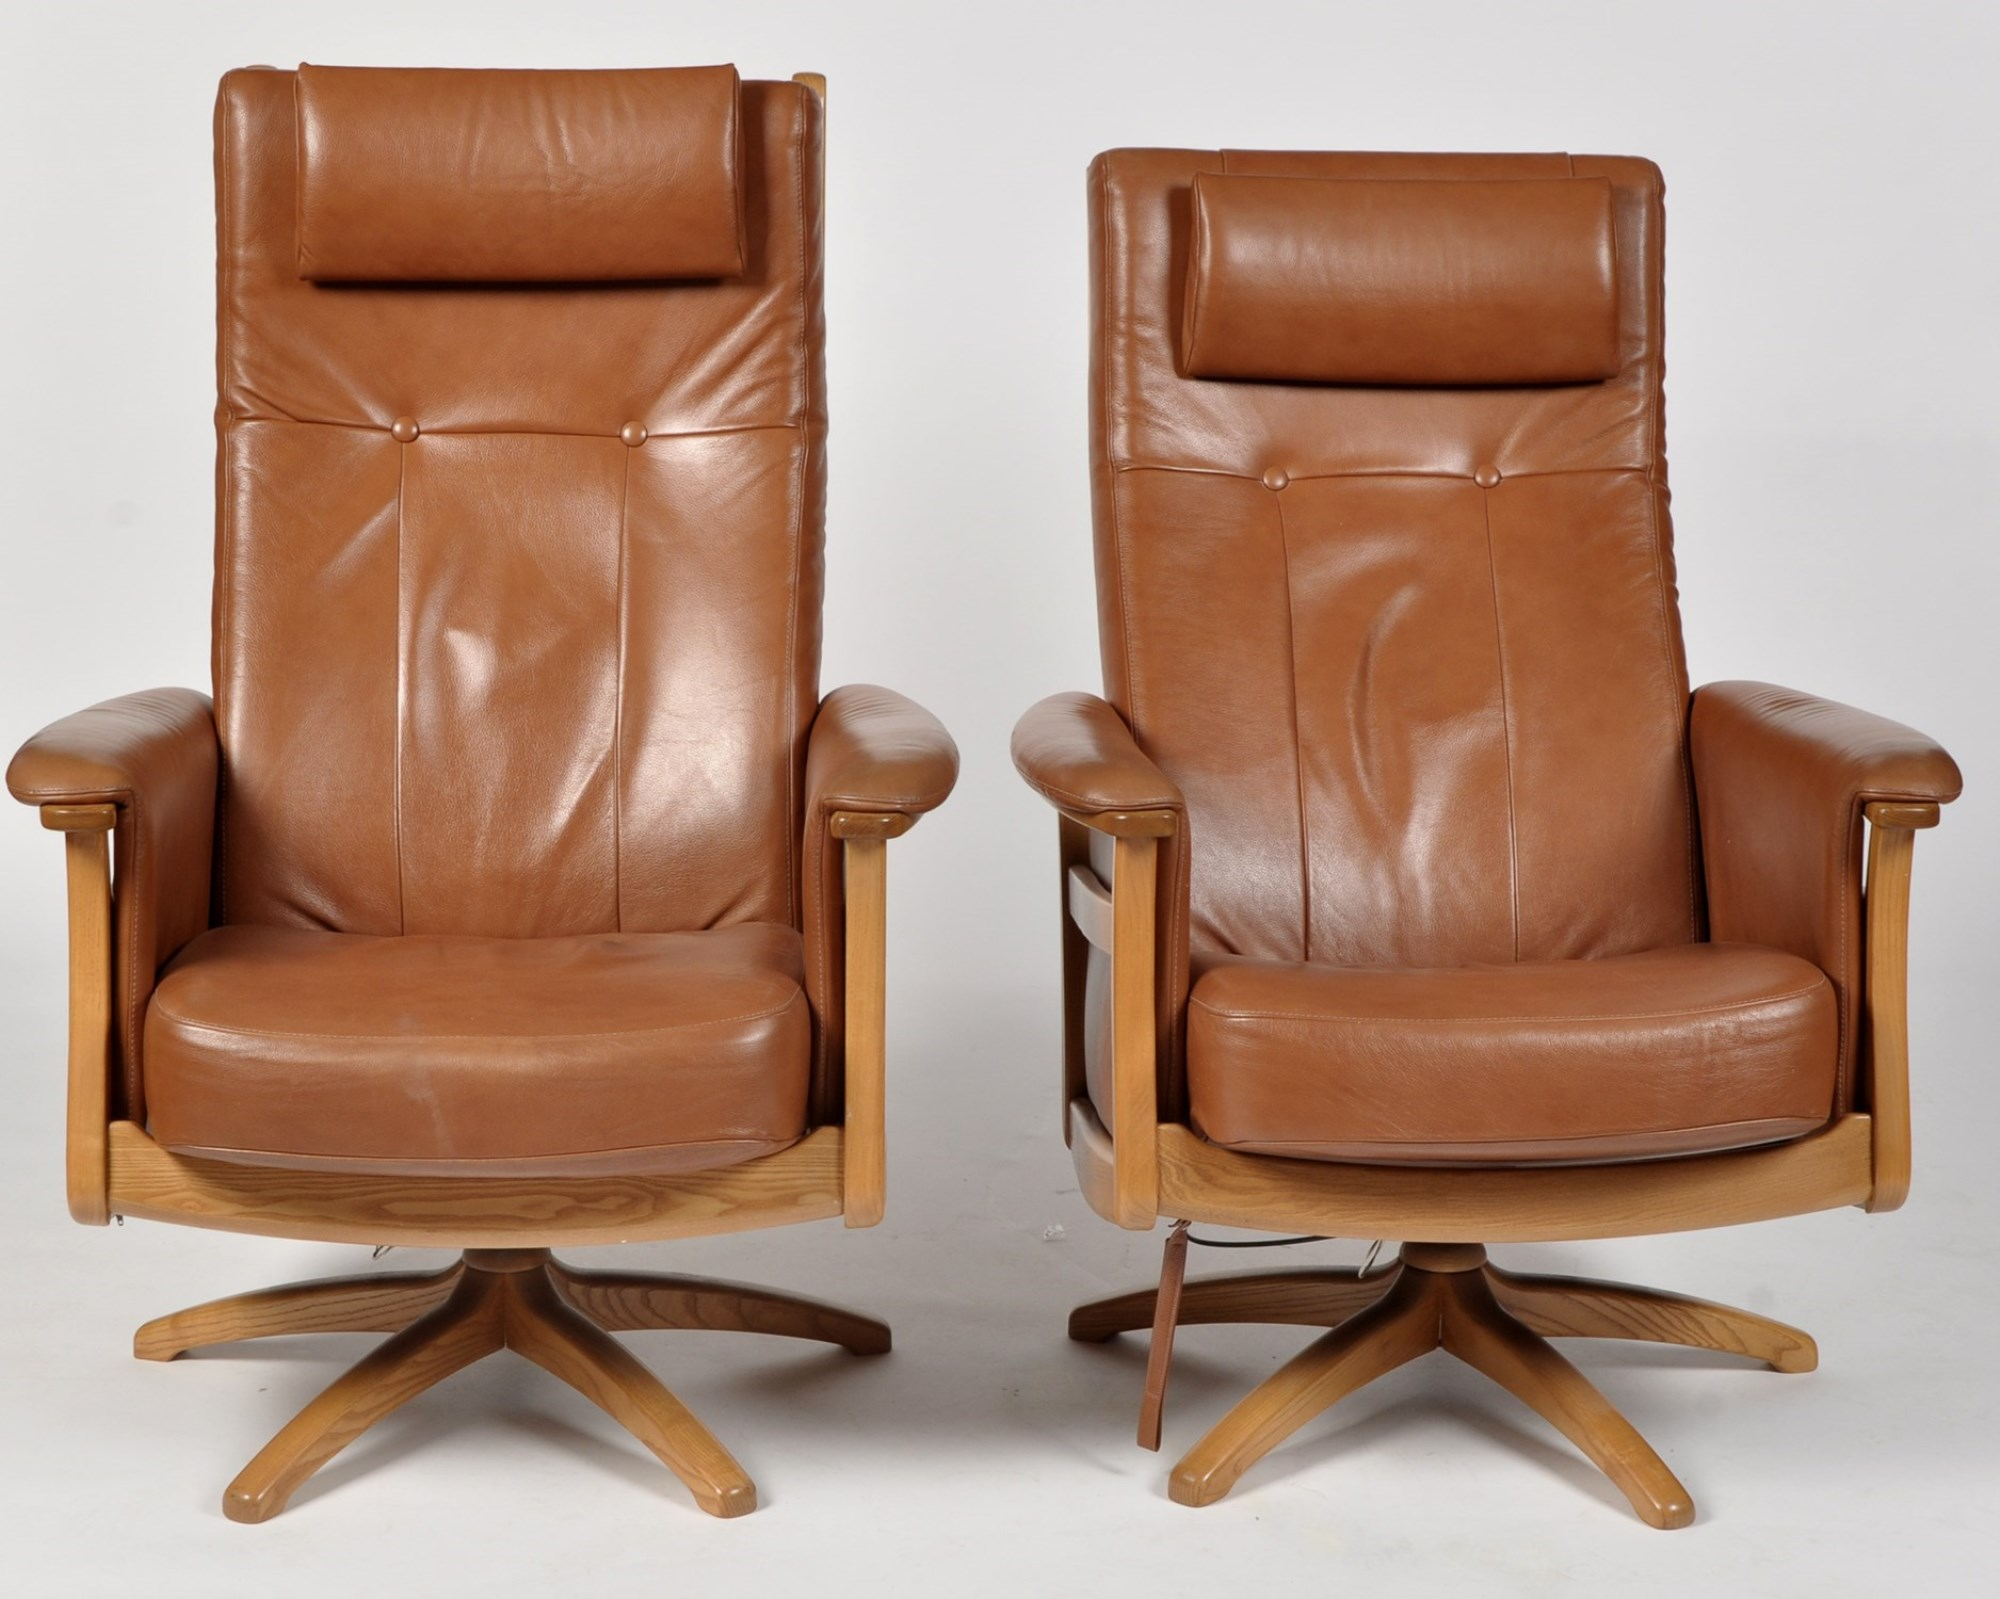 Ercol: two Gina swivel armchairs upholstered in brown leather.